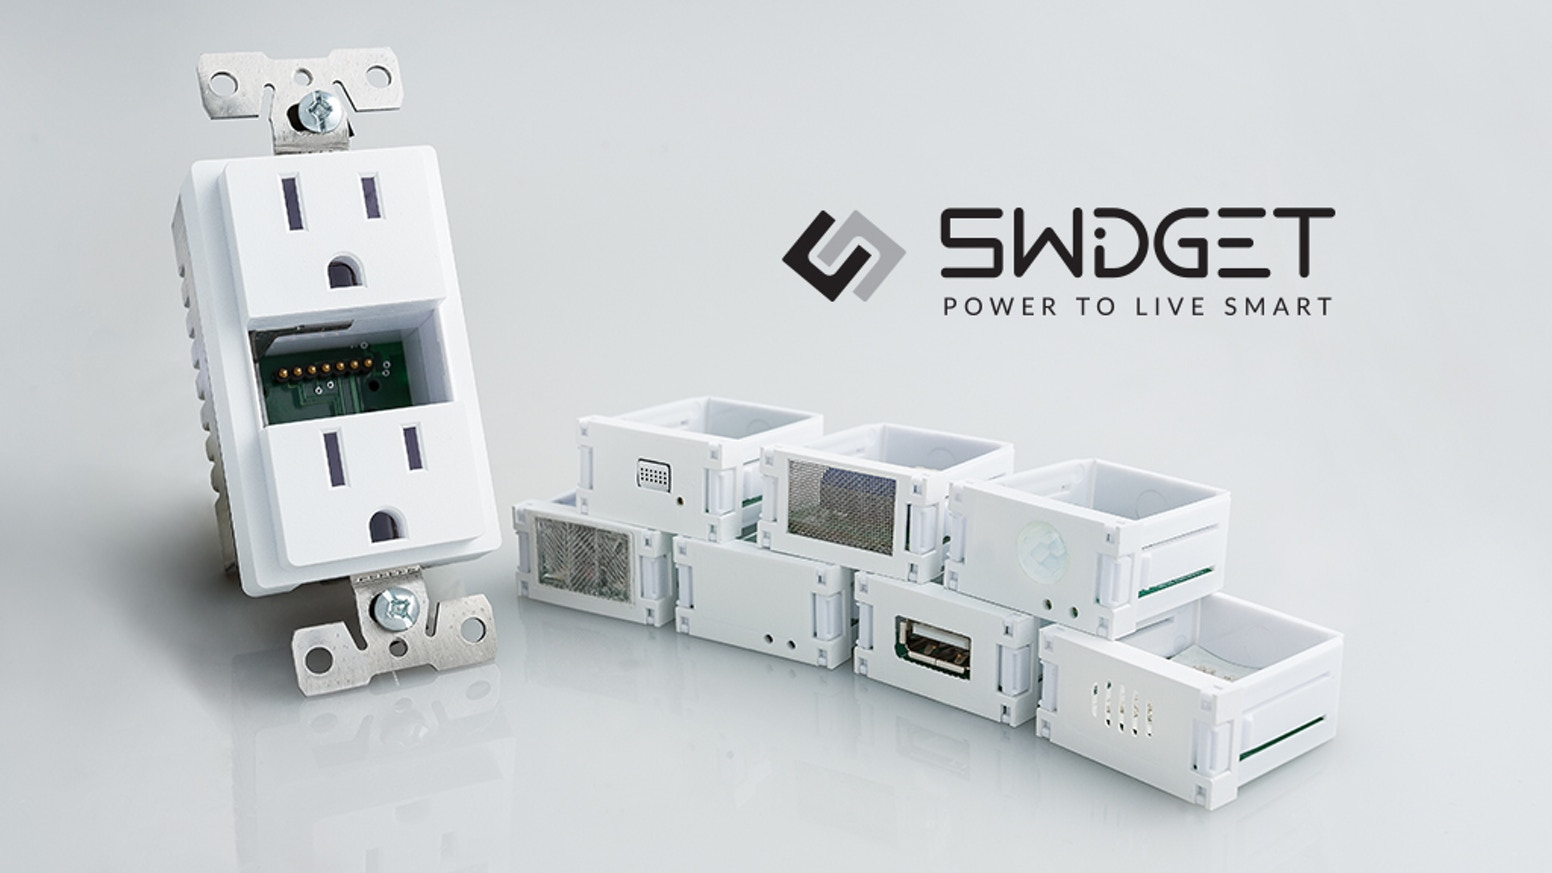 Swidget Outlet The Smart Home Device For All Platforms By How To Build A Automotive Circuit Breaker Permanent Solution Installed Using Your Existing Wiring Eliminates Clutter Hiding Technology Into